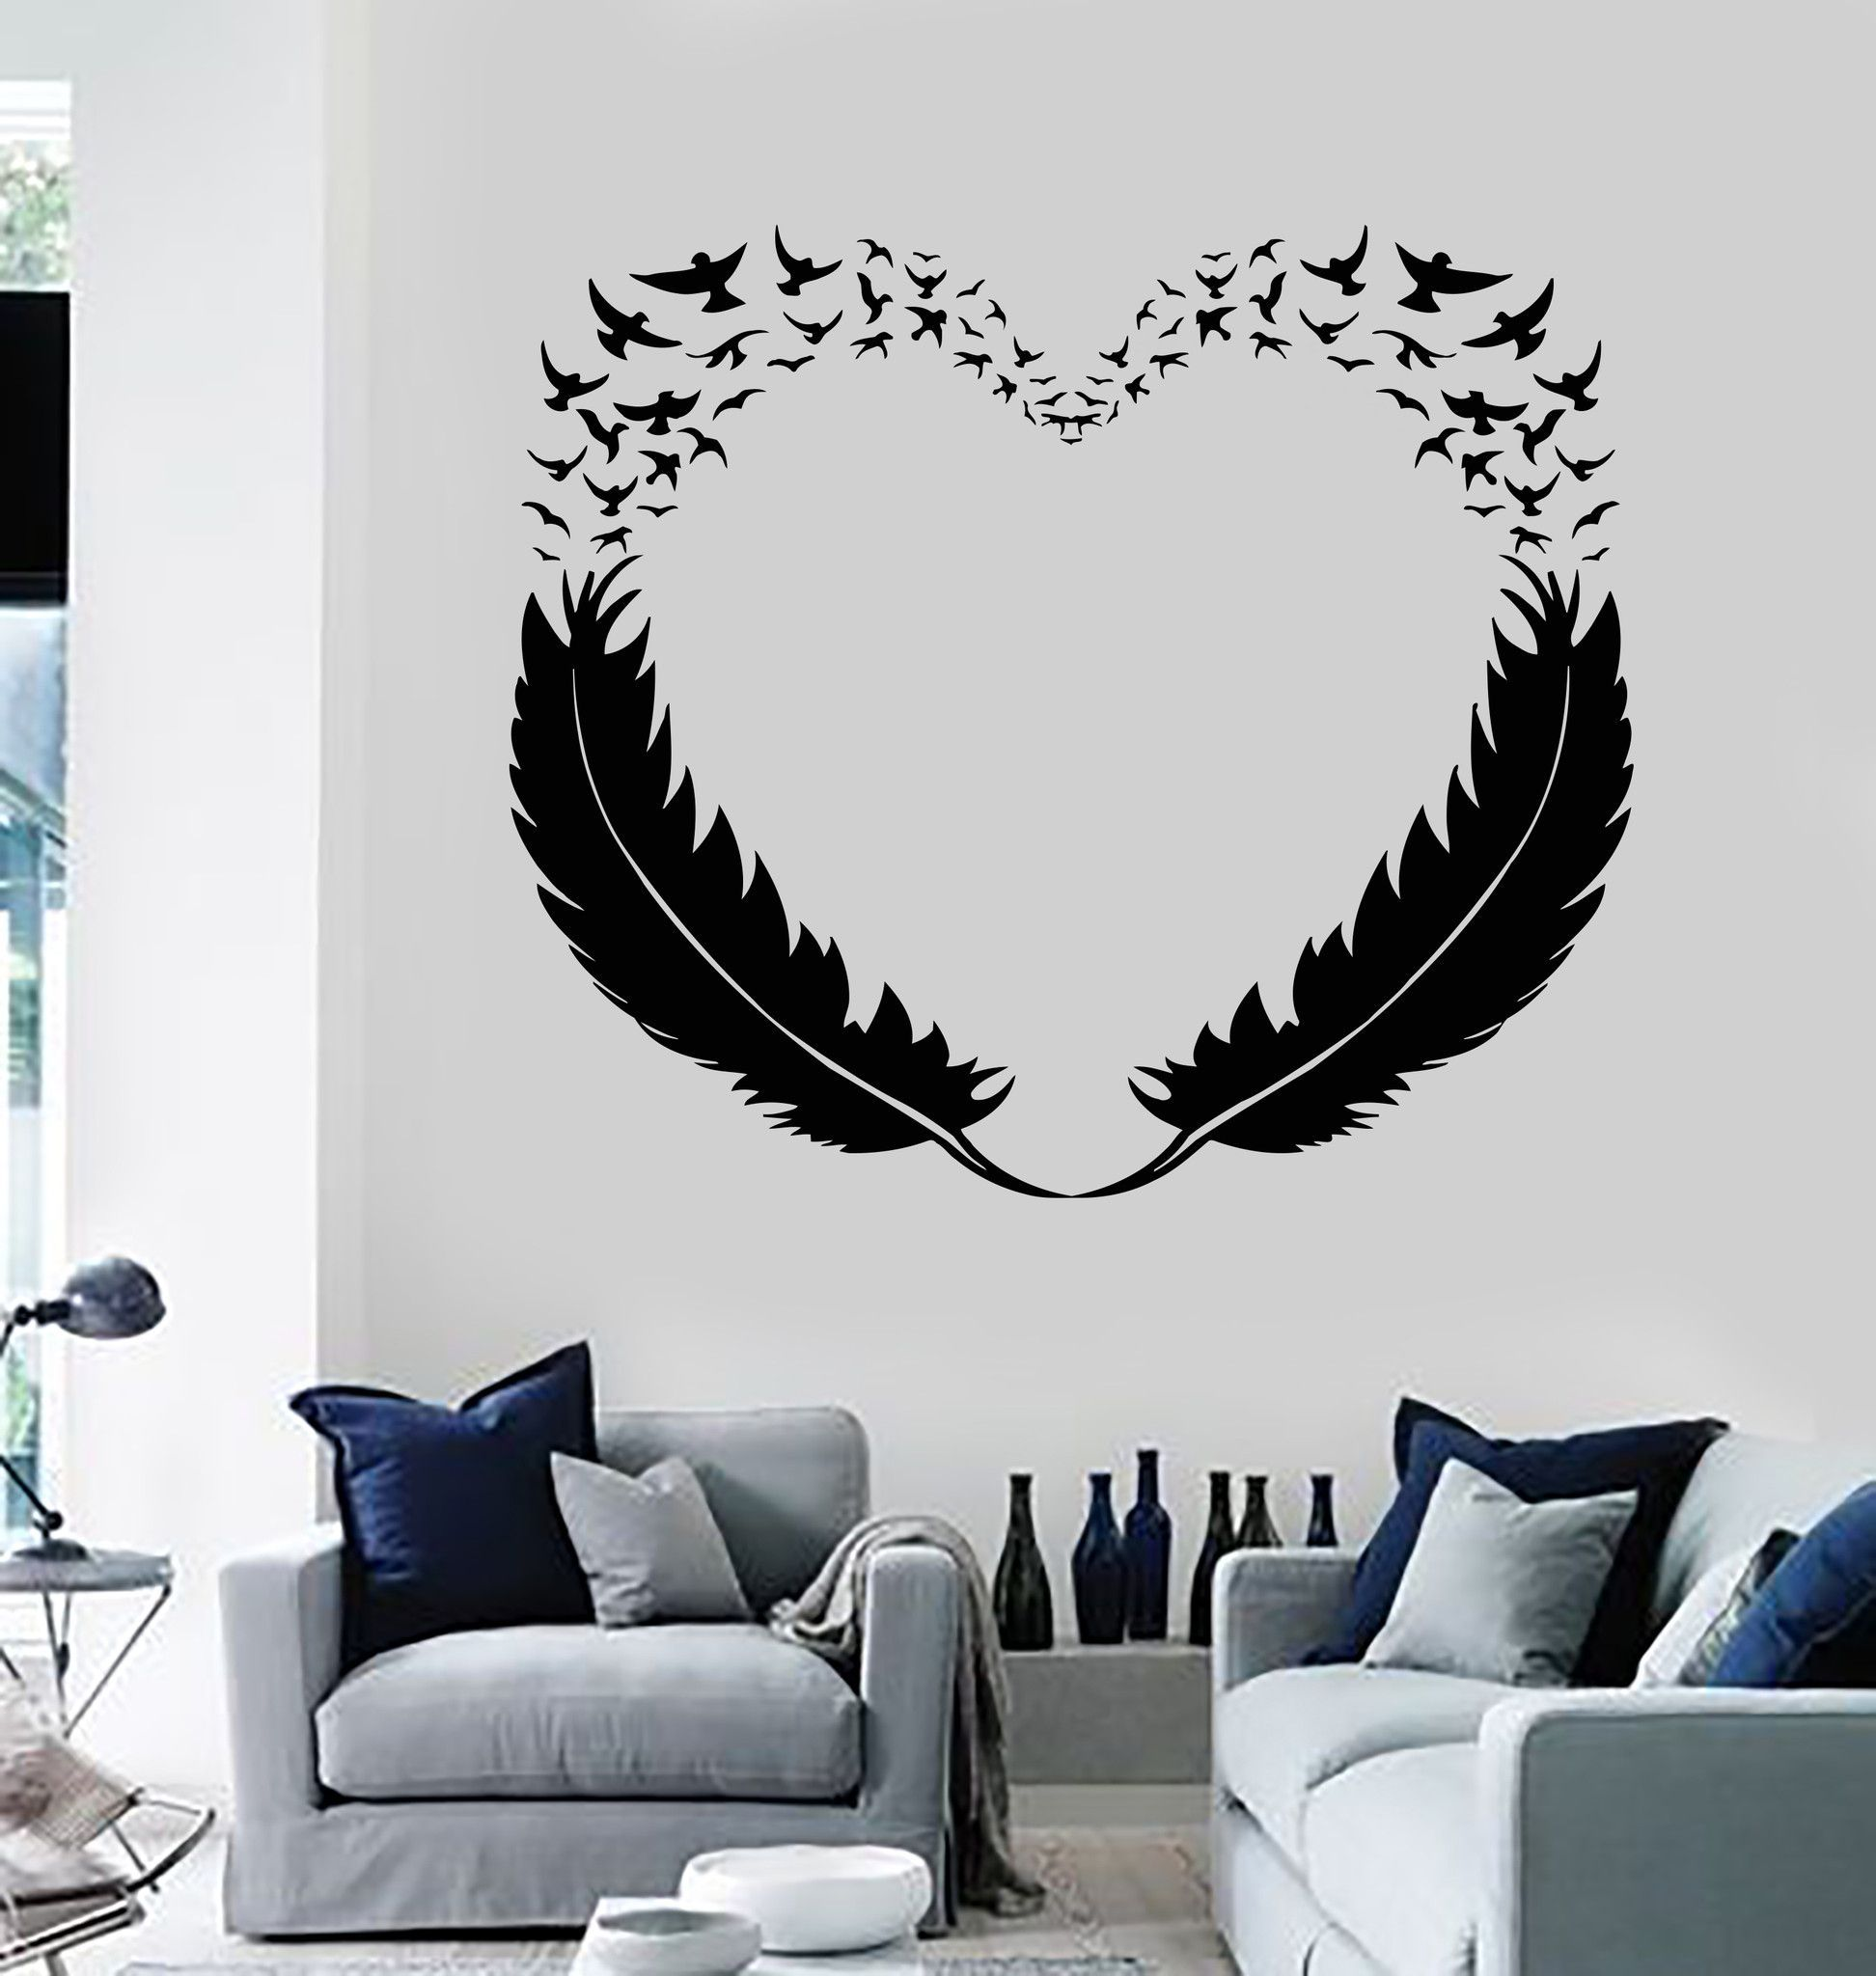 Vinyl Wall Decal Feathers Heart Decor Love Birds Romantic Stickers ...